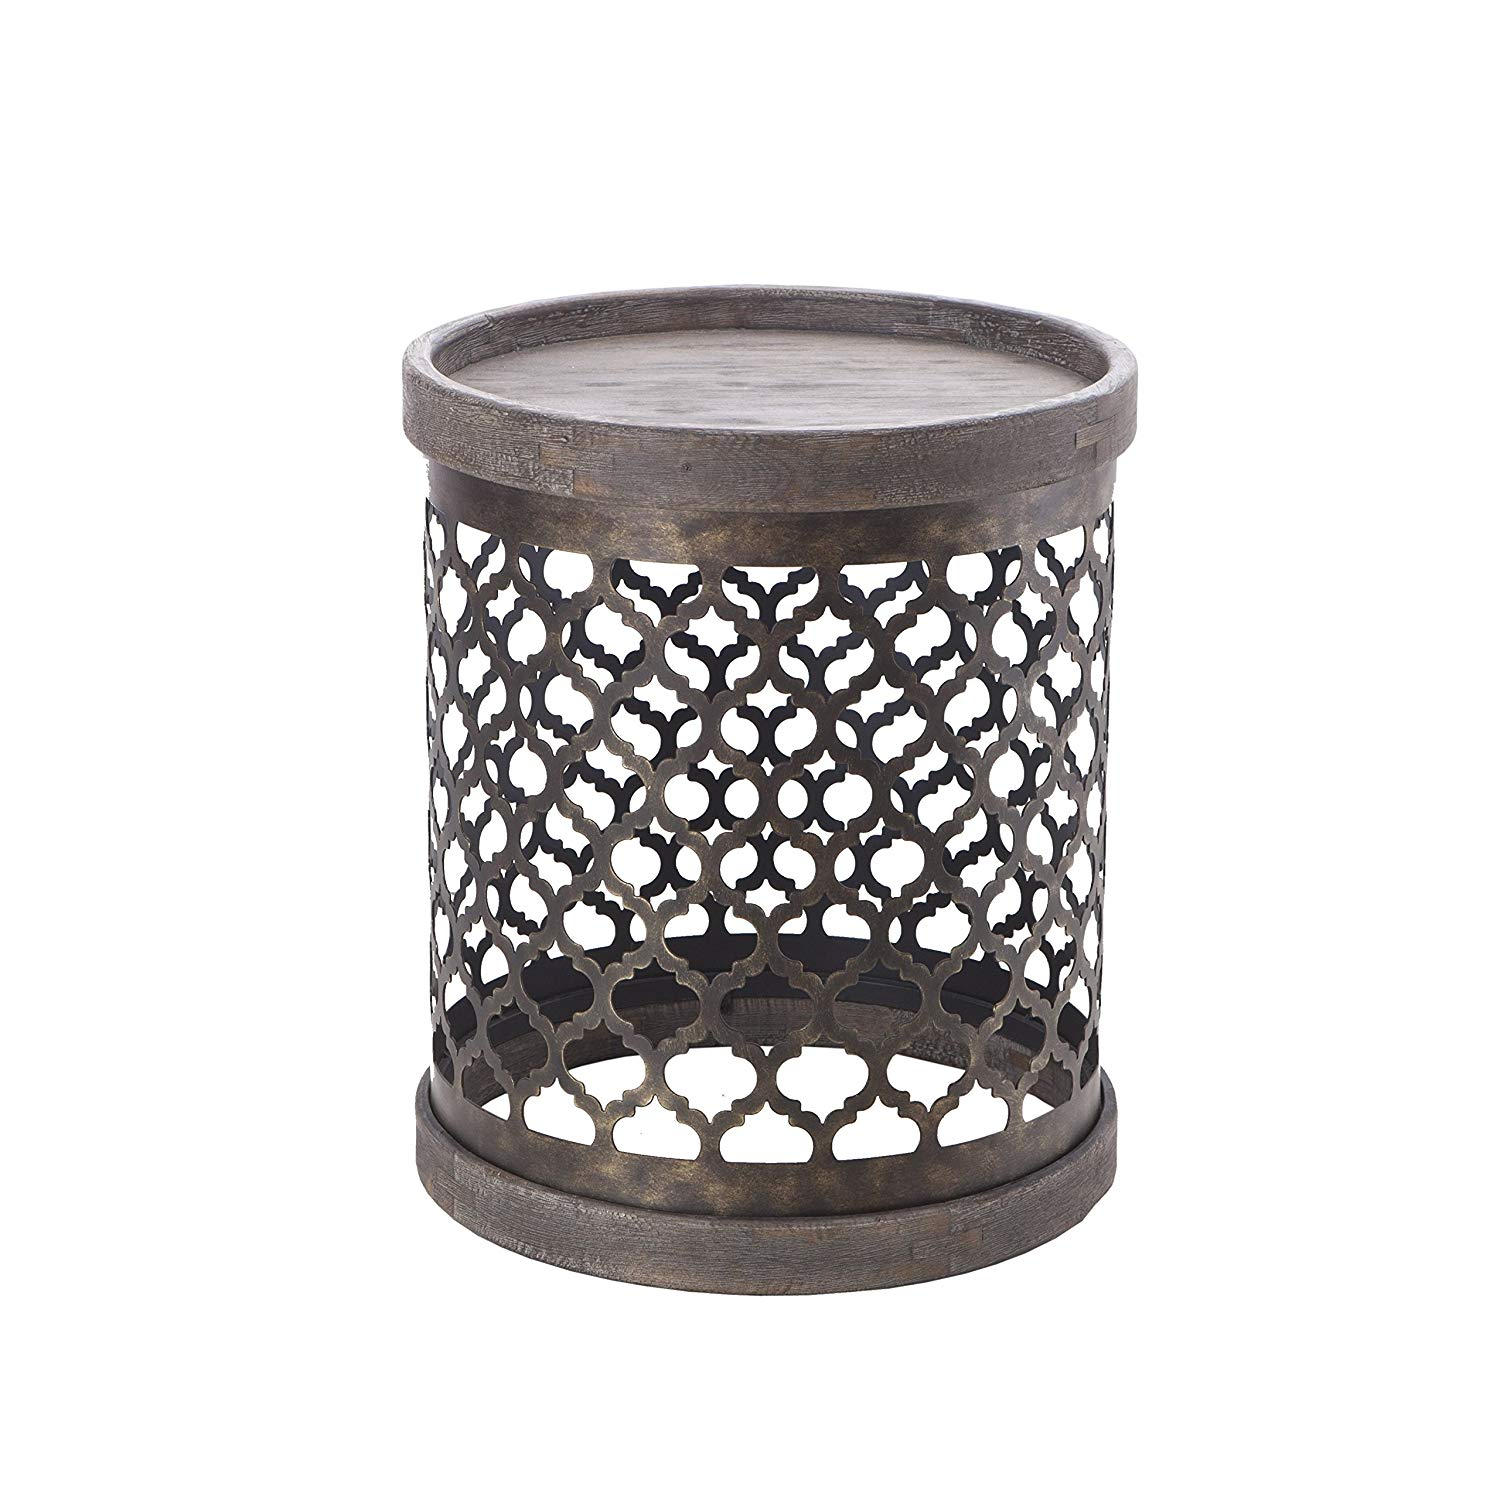 intelligent design cirque accent tables metal side quatrefoil table grey drum modern rustic style end piece round small wooden frog instrument dark wood console bedroom chairs for